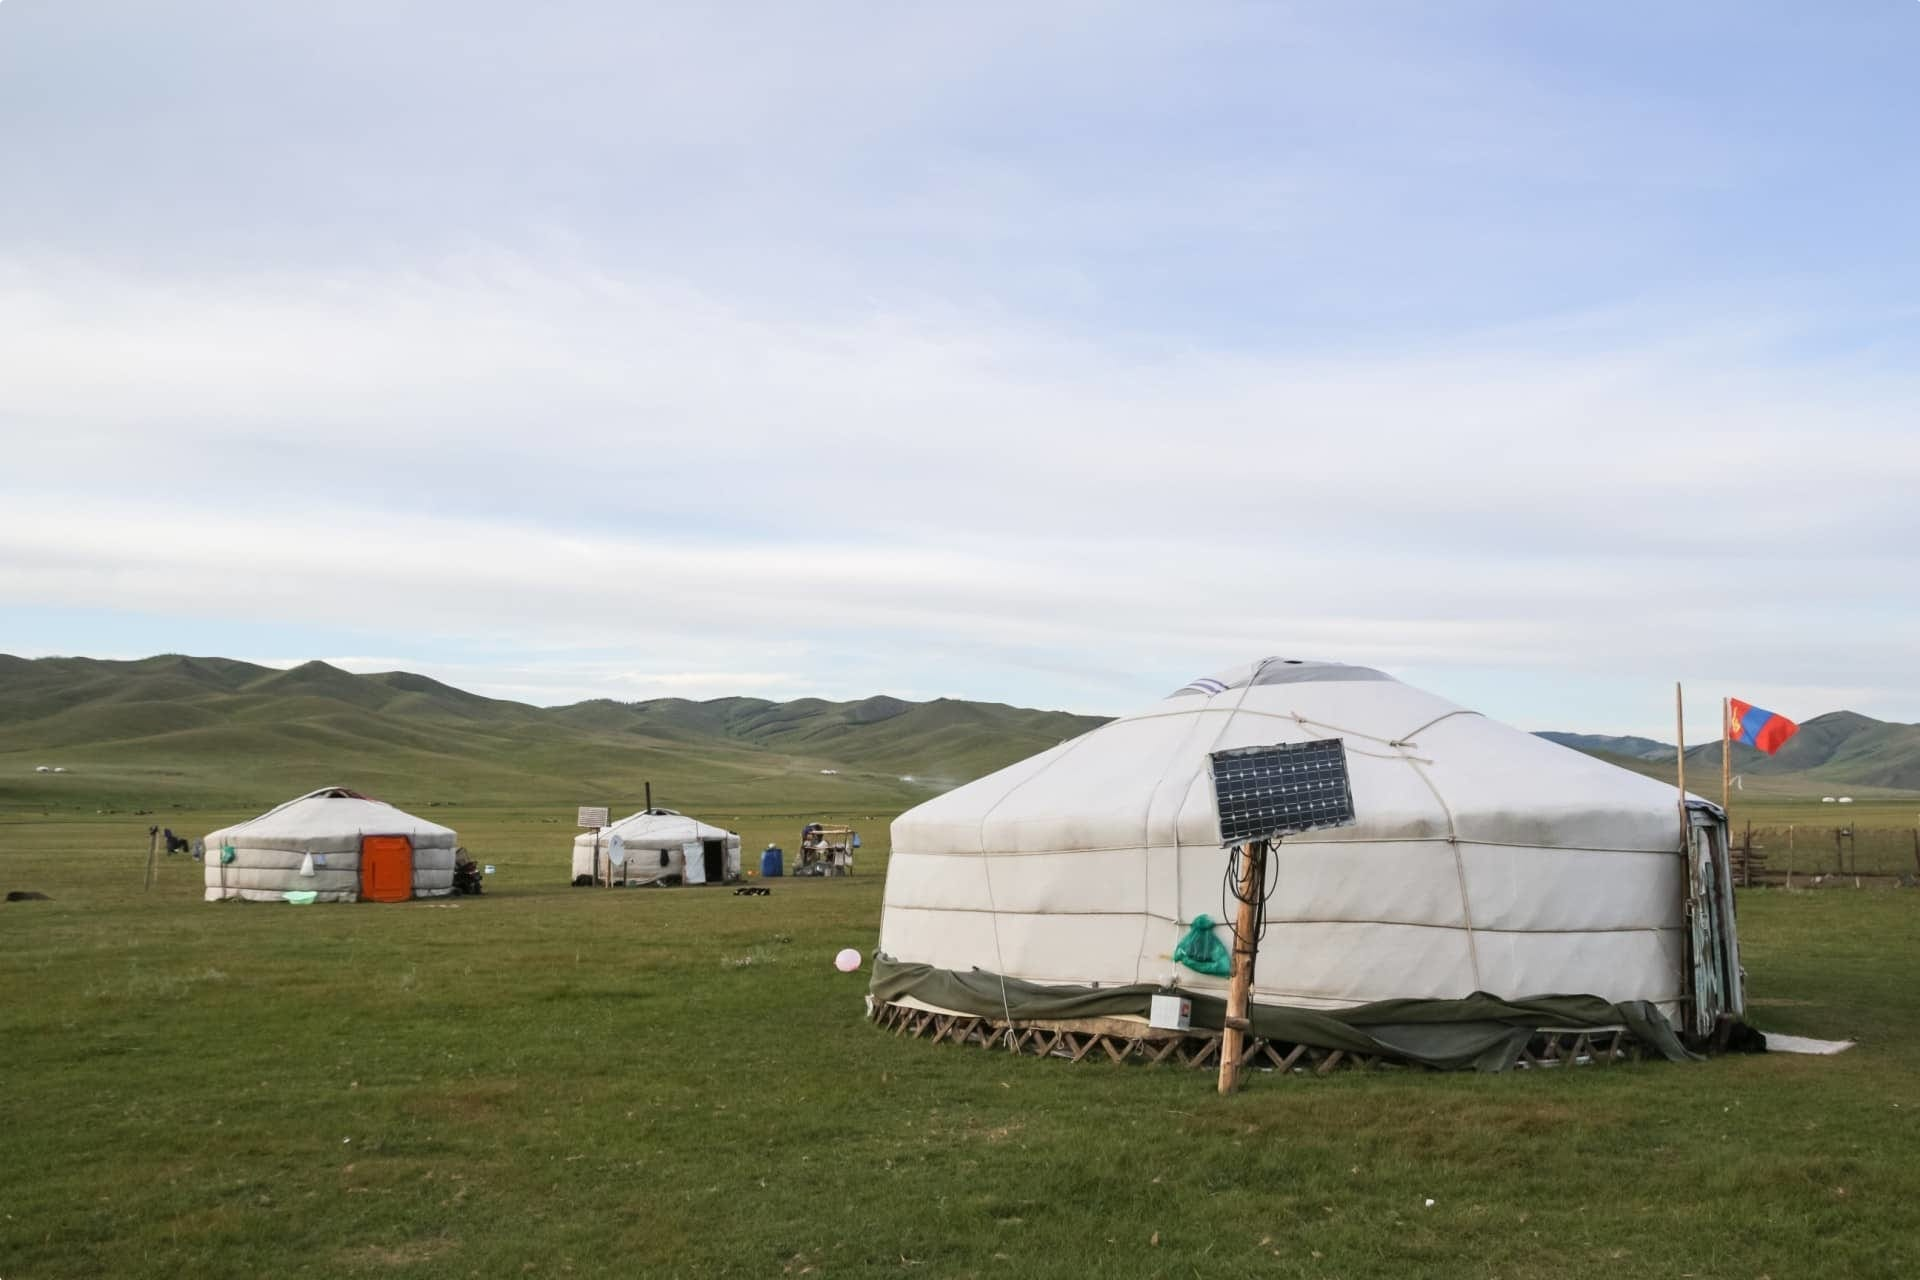 Yurt tents in Mongolia steppes